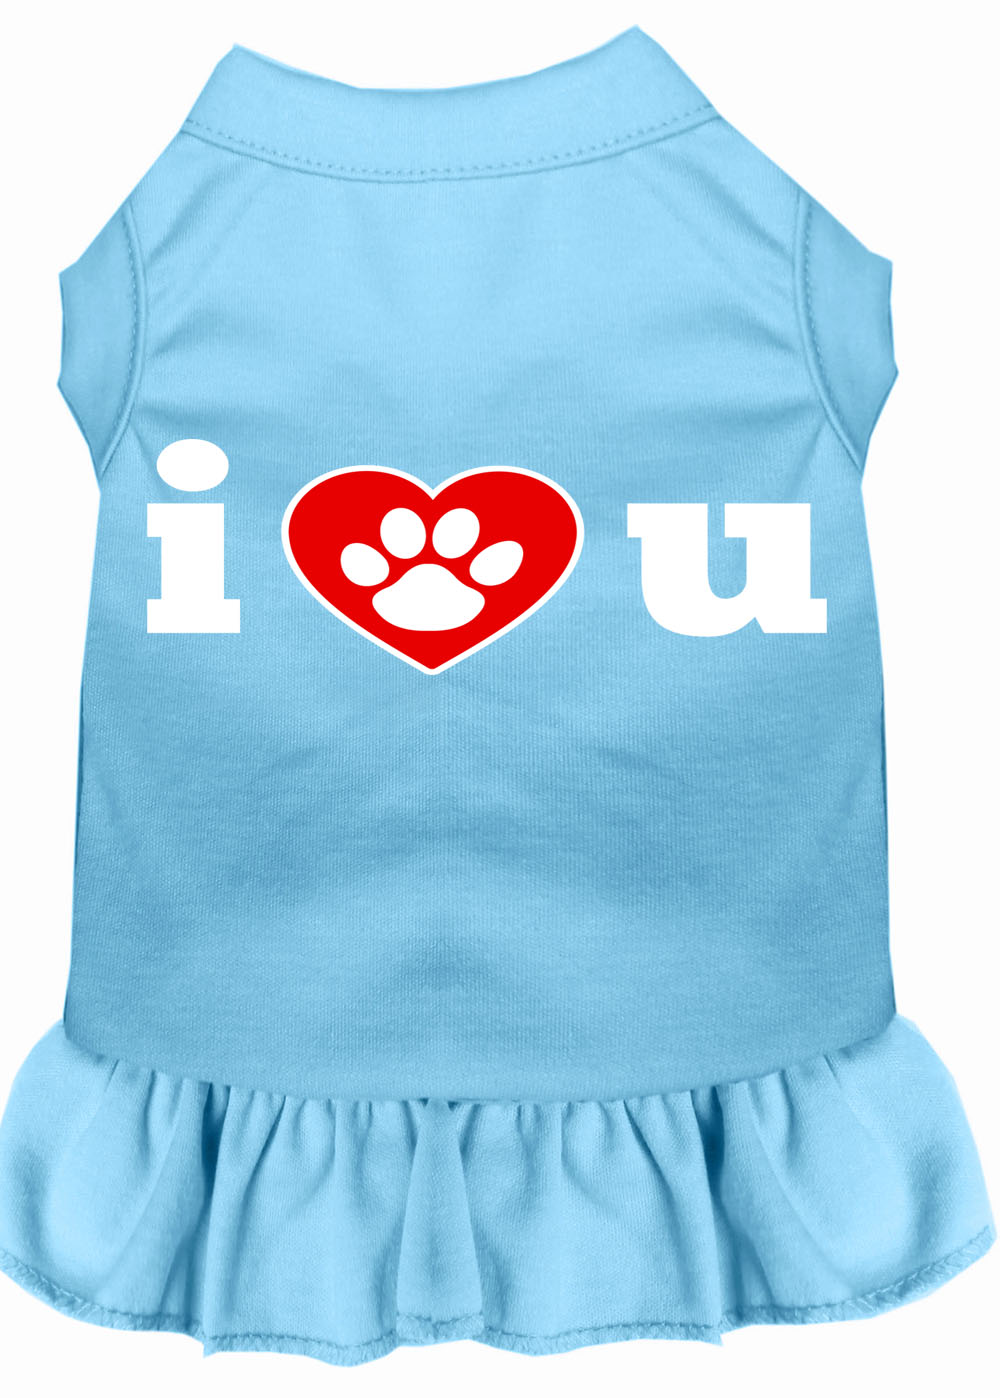 I Heart You Screen Print Dress Baby Blue